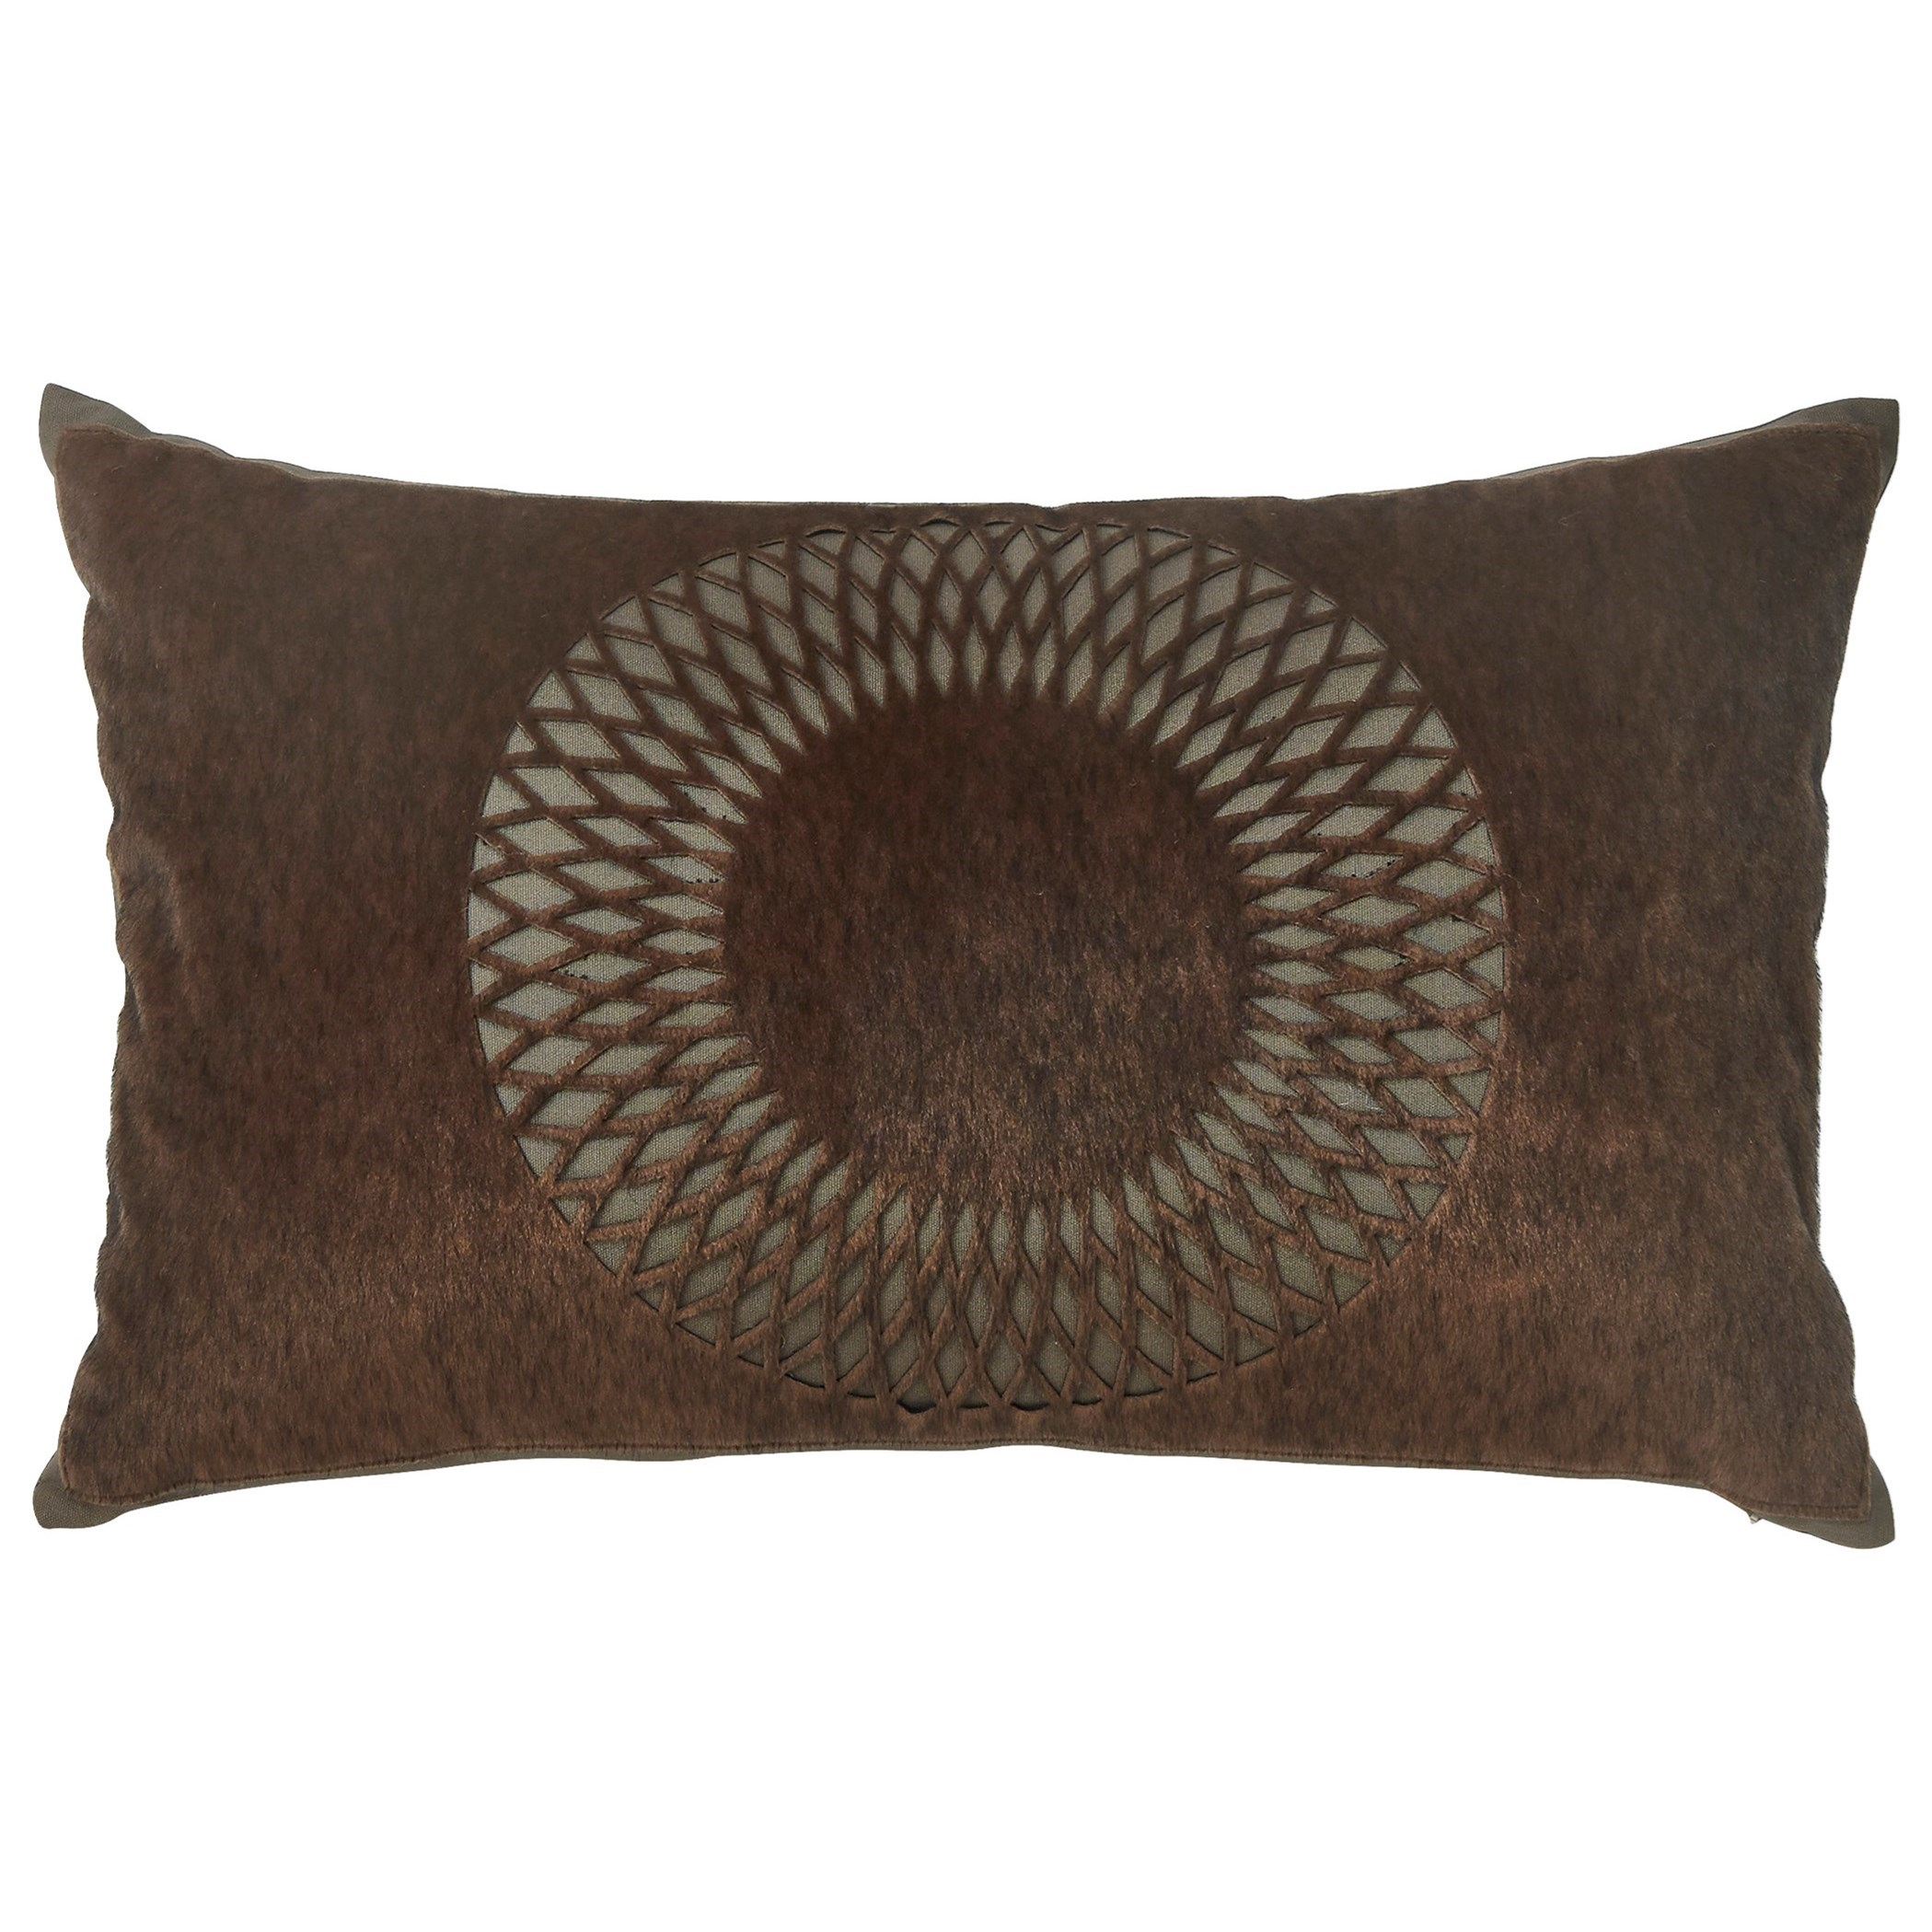 Signature Design by Ashley Pillows Lazarus Brown Pillow - Item Number: A1000351P